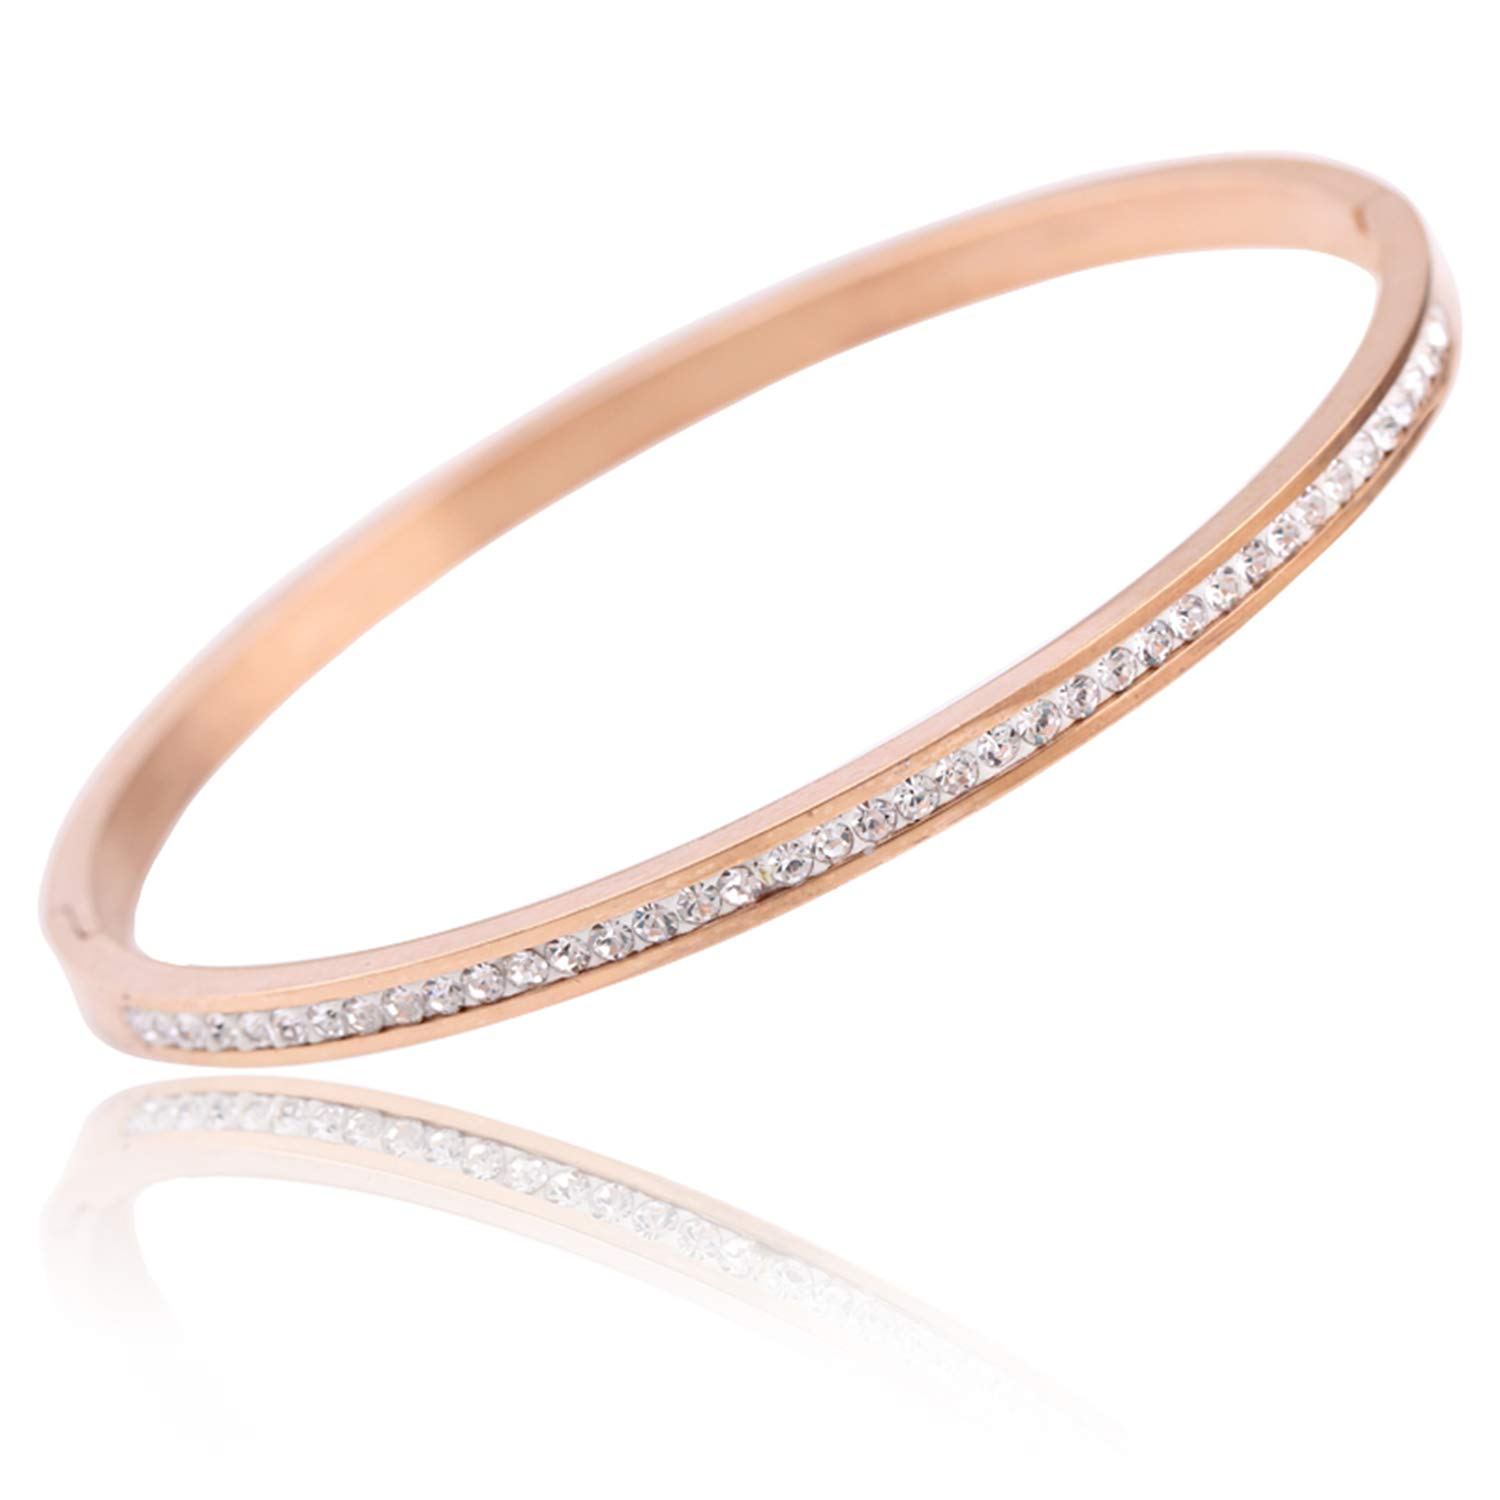 Two Crystal Rhinestone Pave Stainless Steel Opening Bangle for Women Clear Gold-Color